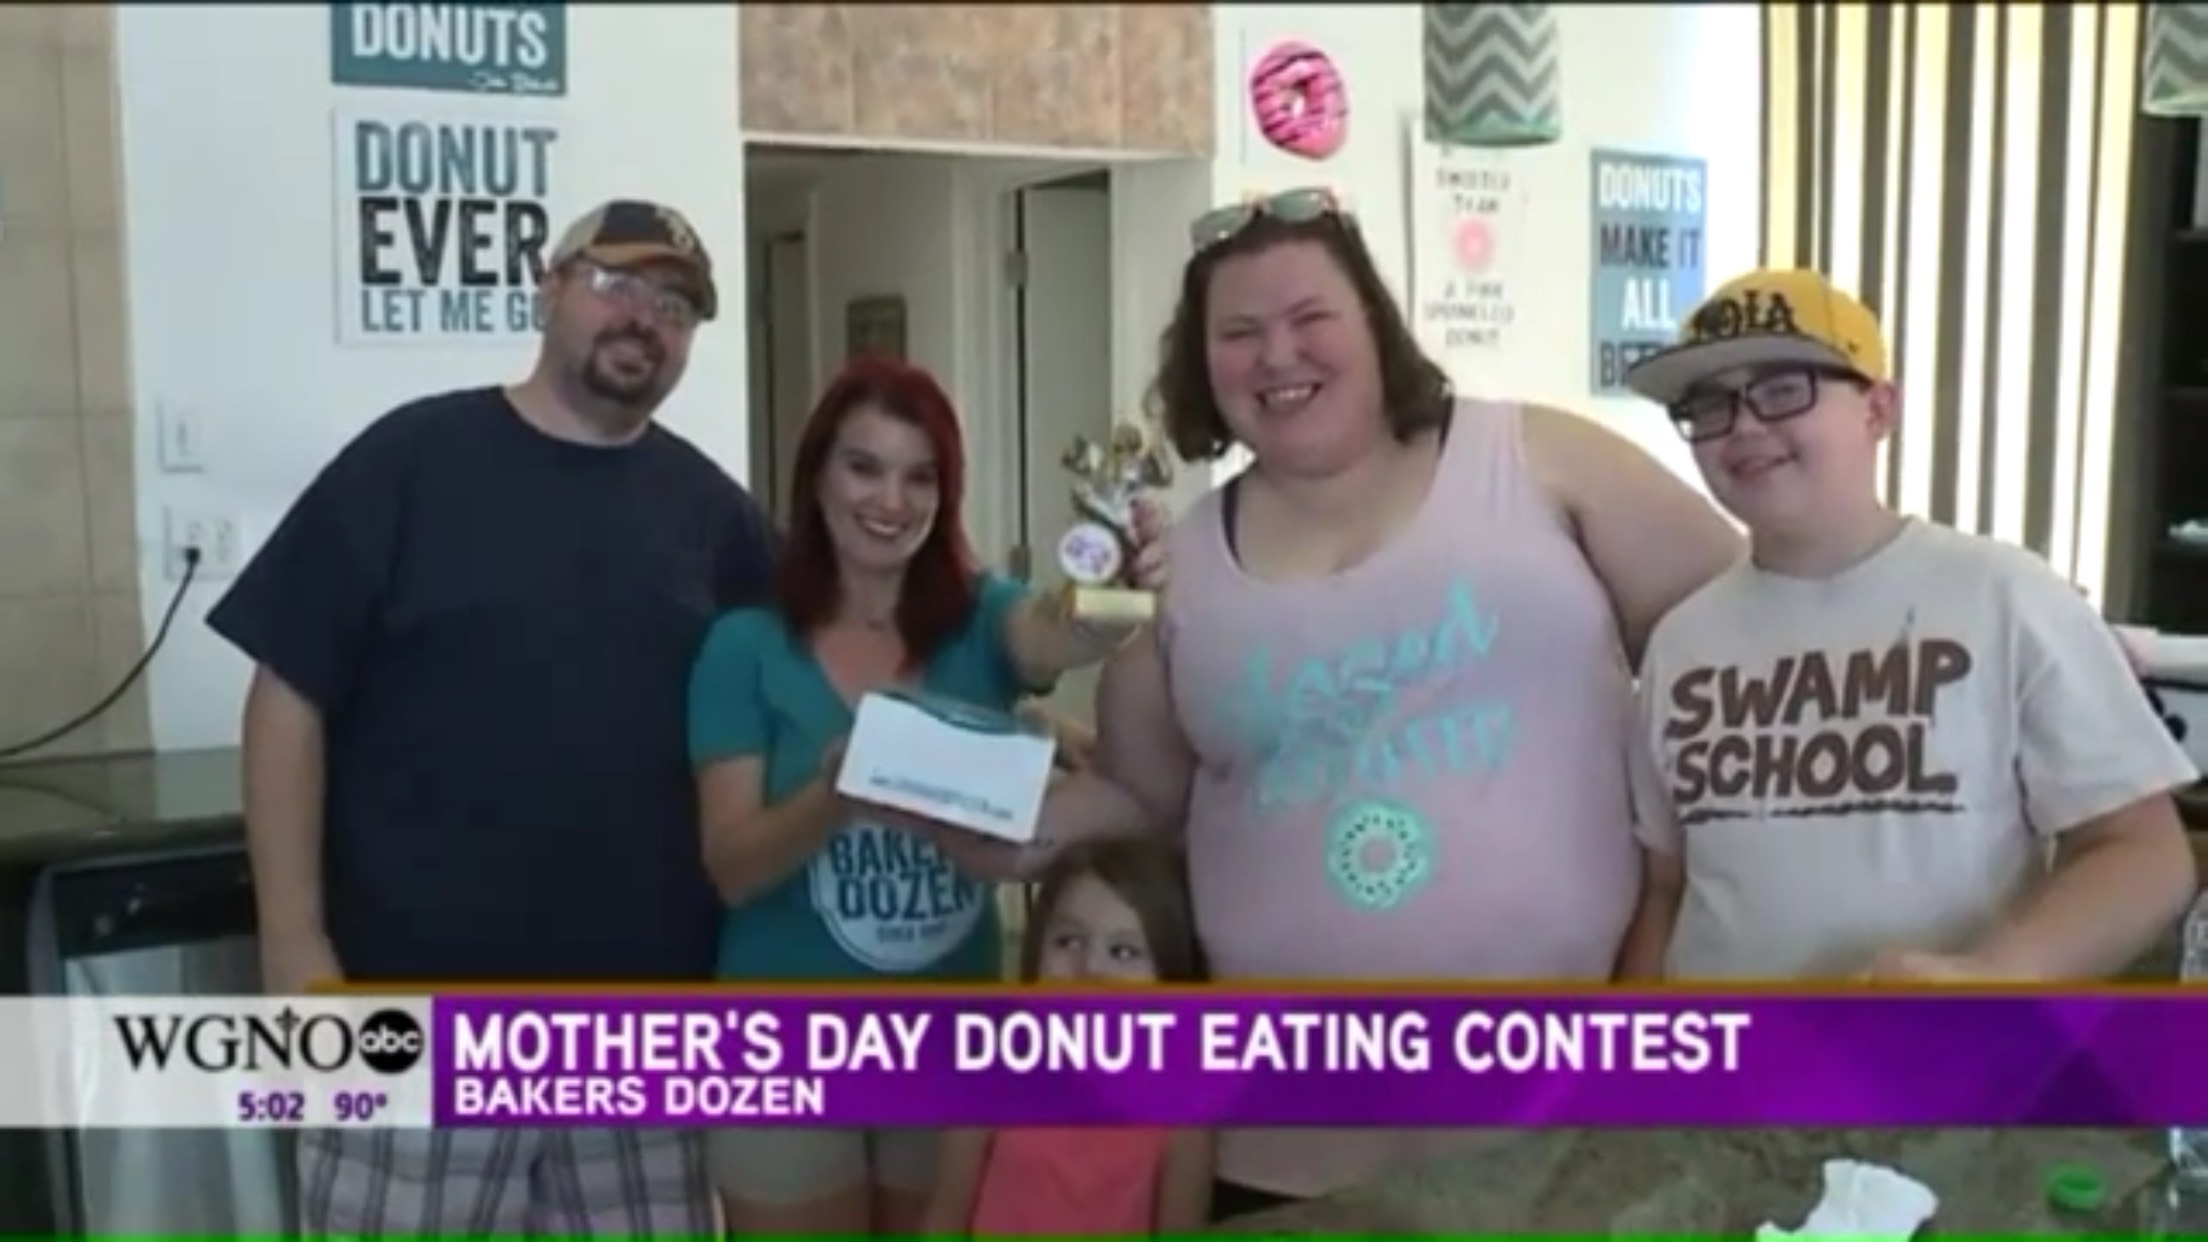 Mother's Day Donut Eating Contest